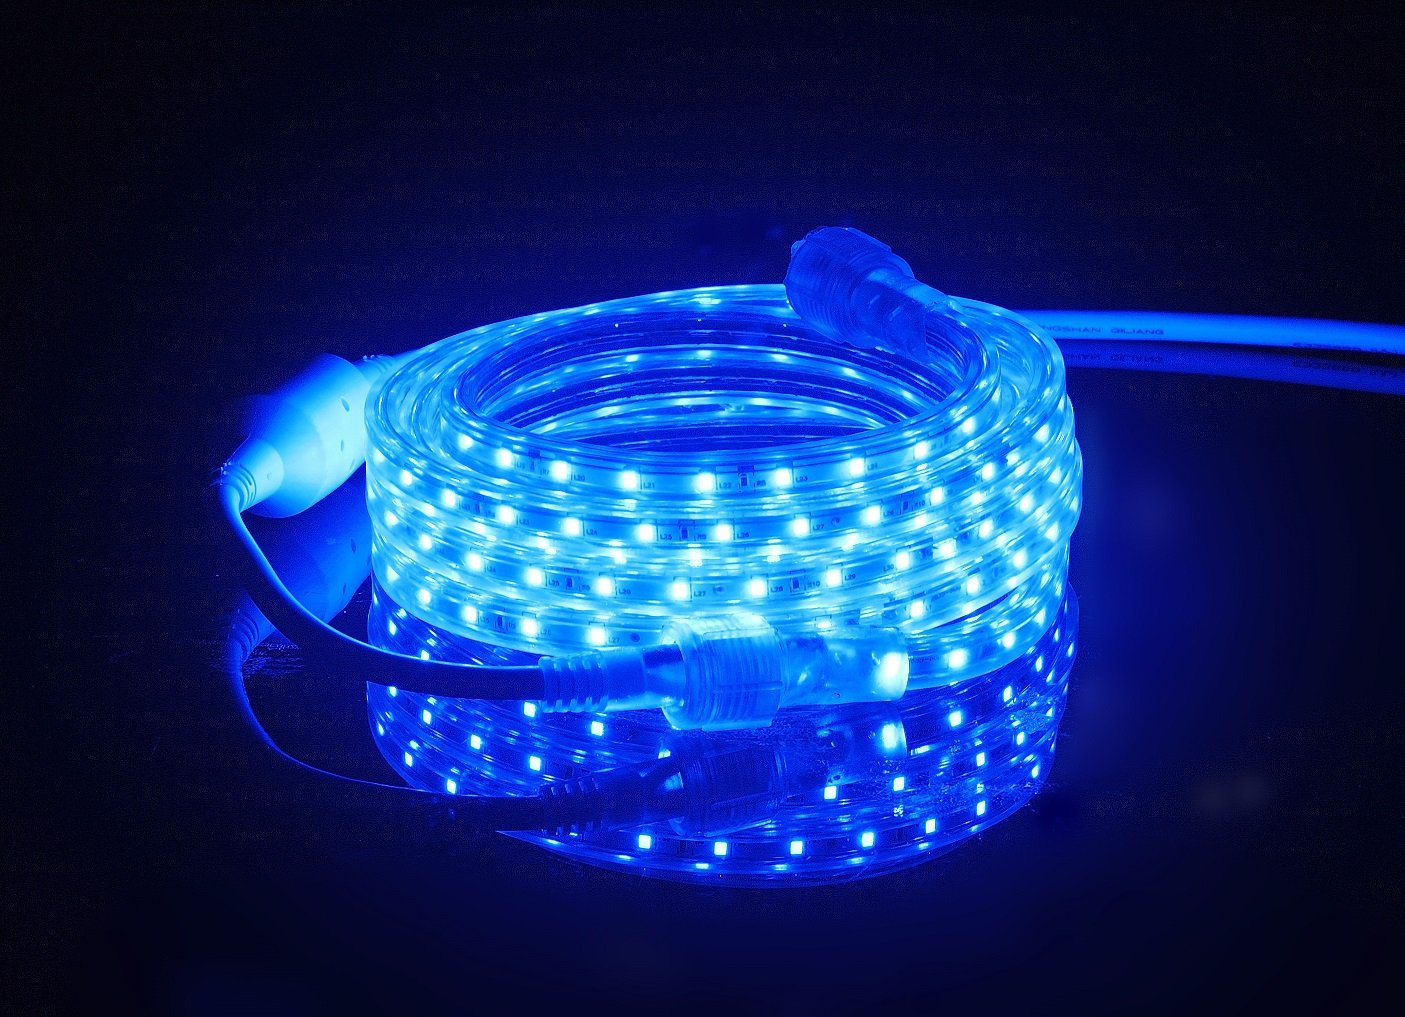 CBconcept UL Listed, 50 Feet, 5500 Lumen, Blue, Dimmable, 110-120V AC Flexible Flat LED Strip Rope Light, 930 Units 3528 SMD LEDs, Indoor/Outdoor Use, Accessories Included, [Ready to use] by CBconcept (Image #2)